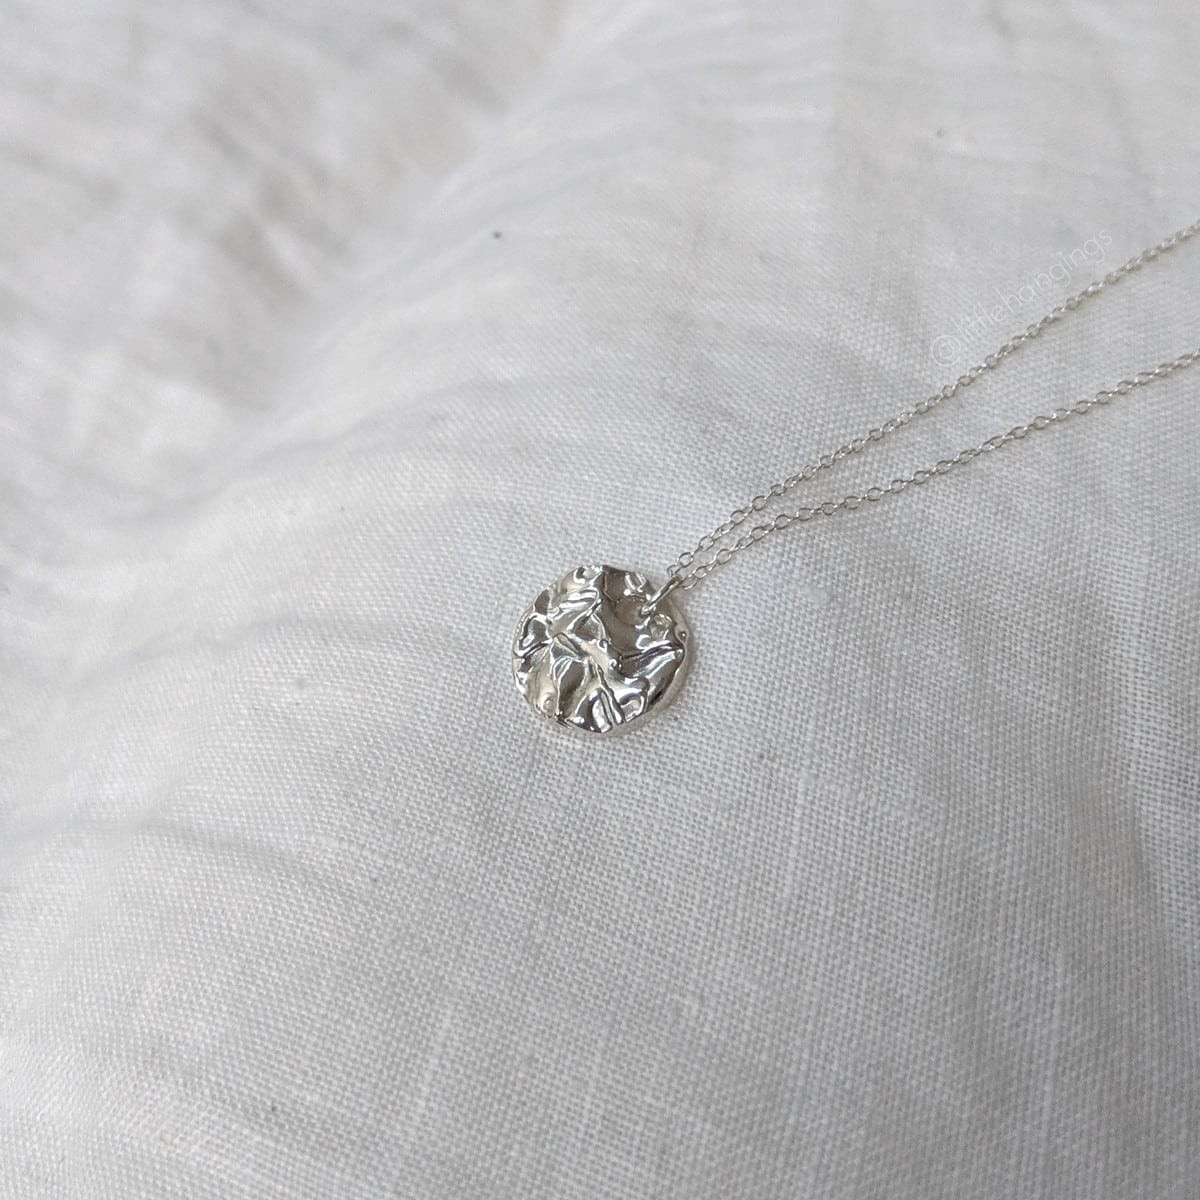 Tide Pool Necklace In Sterling Silver By Little Hangings